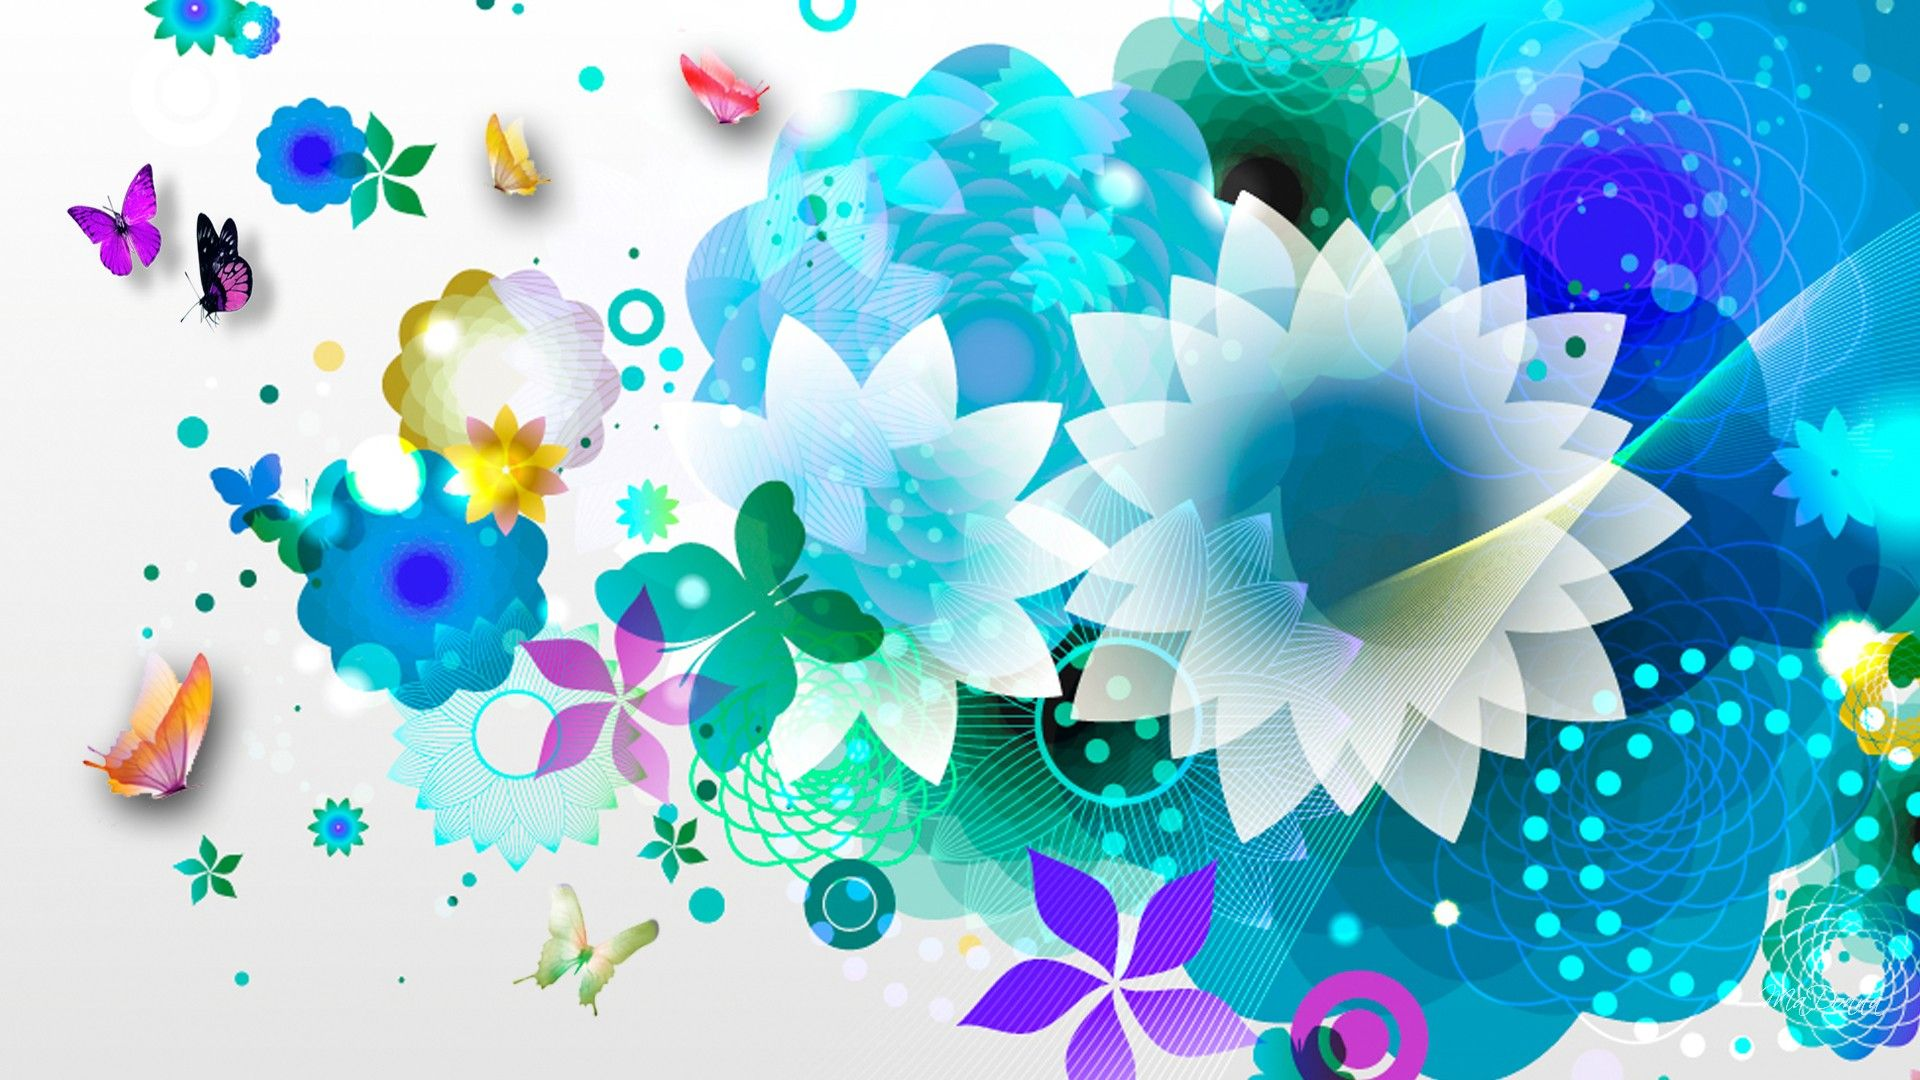 Wallpaper Flowers Blue Wallpapers Free With High Resolution 1920x1080 Px 38689 KB